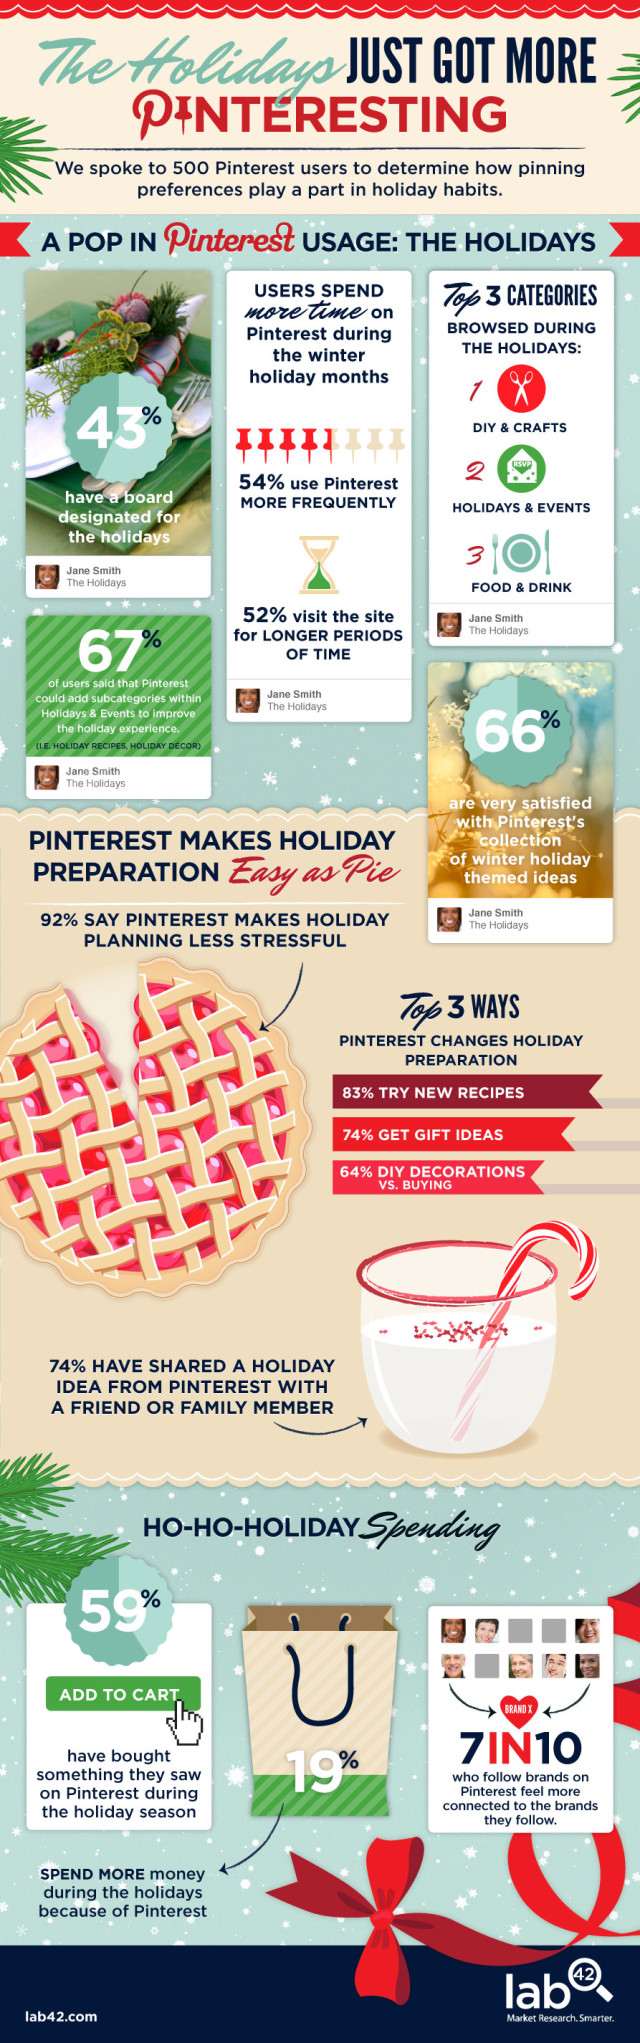 infographic_-_pinterest_holiday